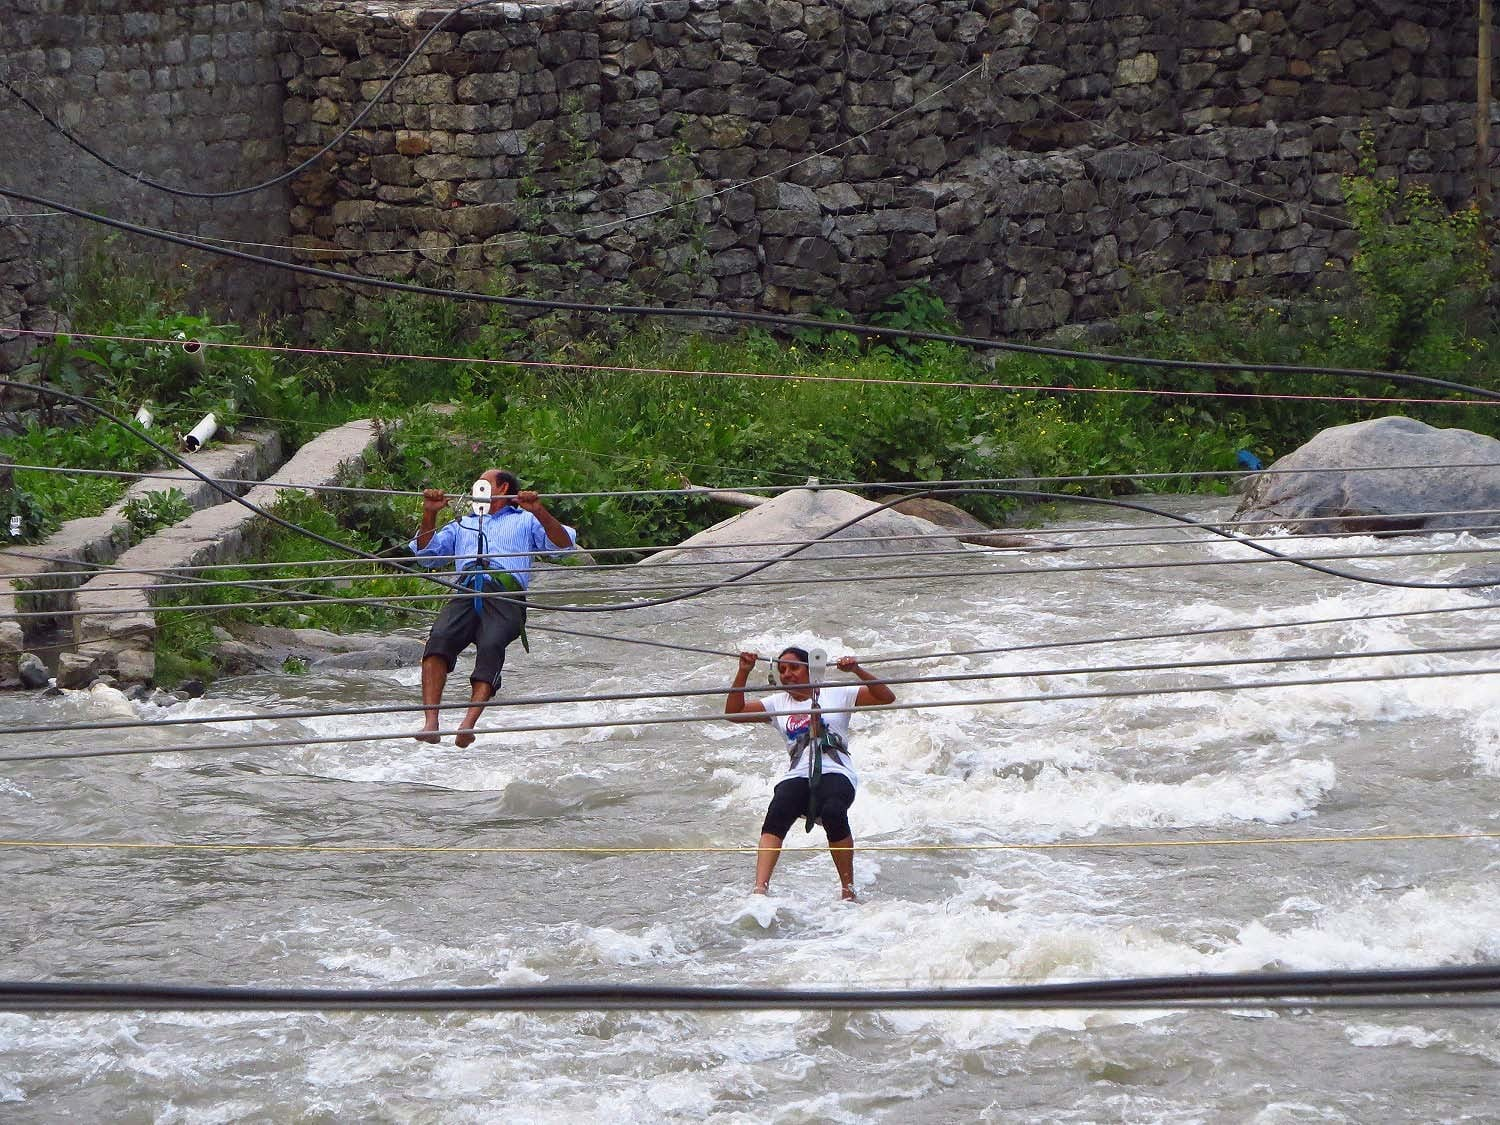 Water jumping in Old Manali.